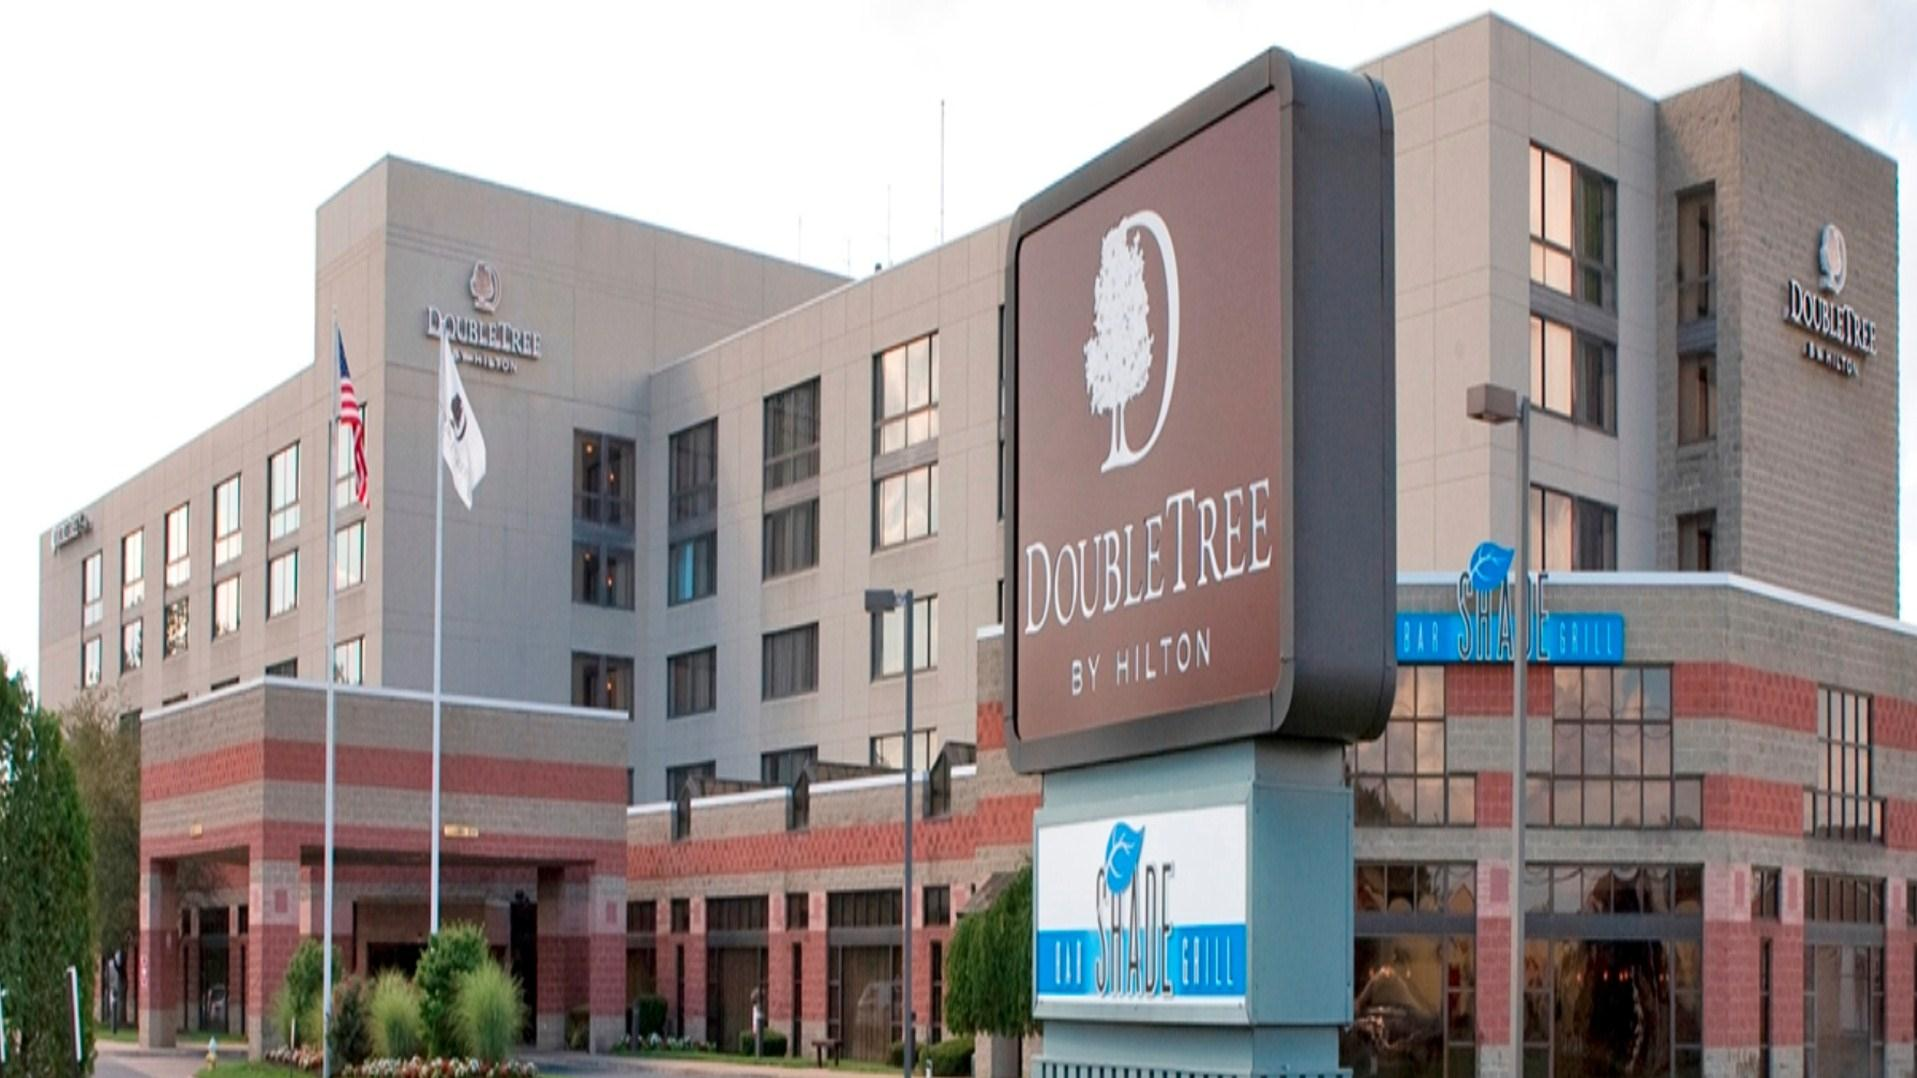 Meetings And Events At DoubleTree By Hilton Hotel Hartford   Bradley  Airport, Windsor Locks, CT, US